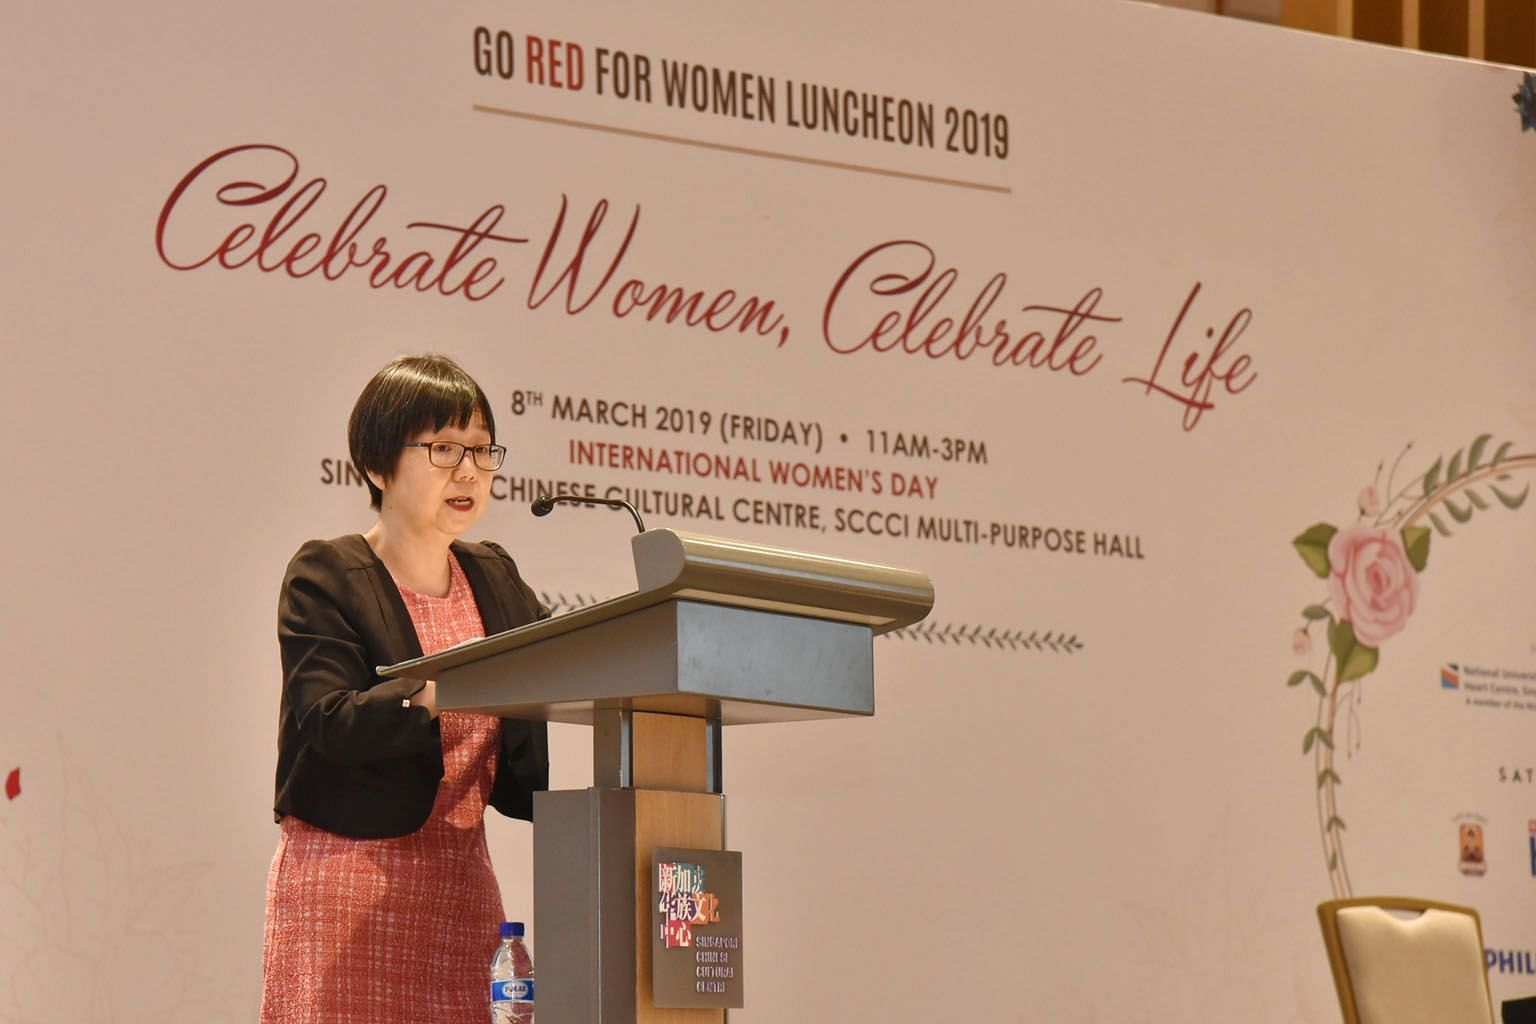 Dr Goh Ping Ping, chairman of the Go Red for Women Campaign here and a Singapore Heart Foundation board member, speaking at the Go Red For Women Luncheon 2019 yesterday.